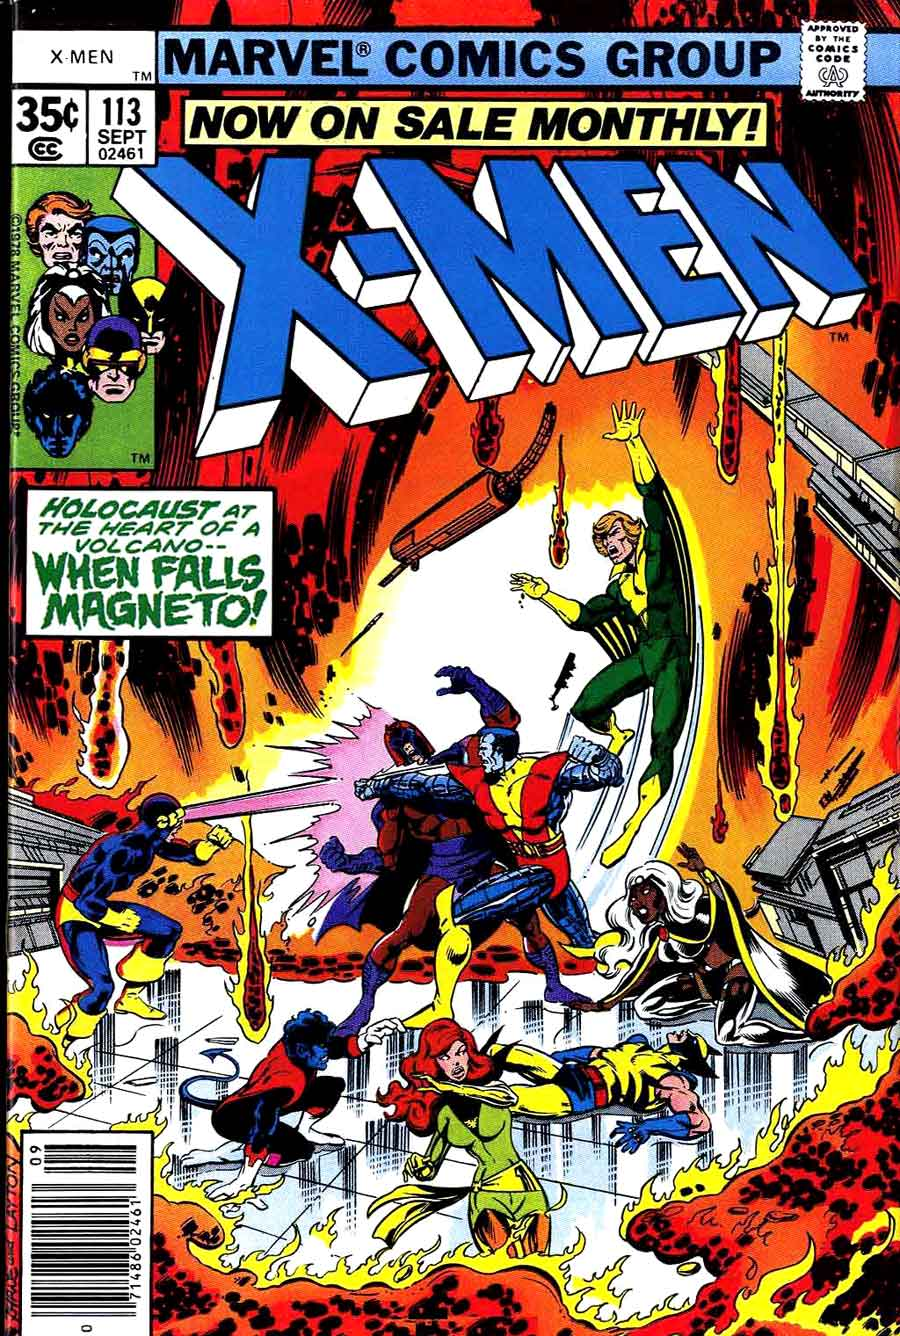 X-men v1 #113 marvel comic book cover art by John Byrne